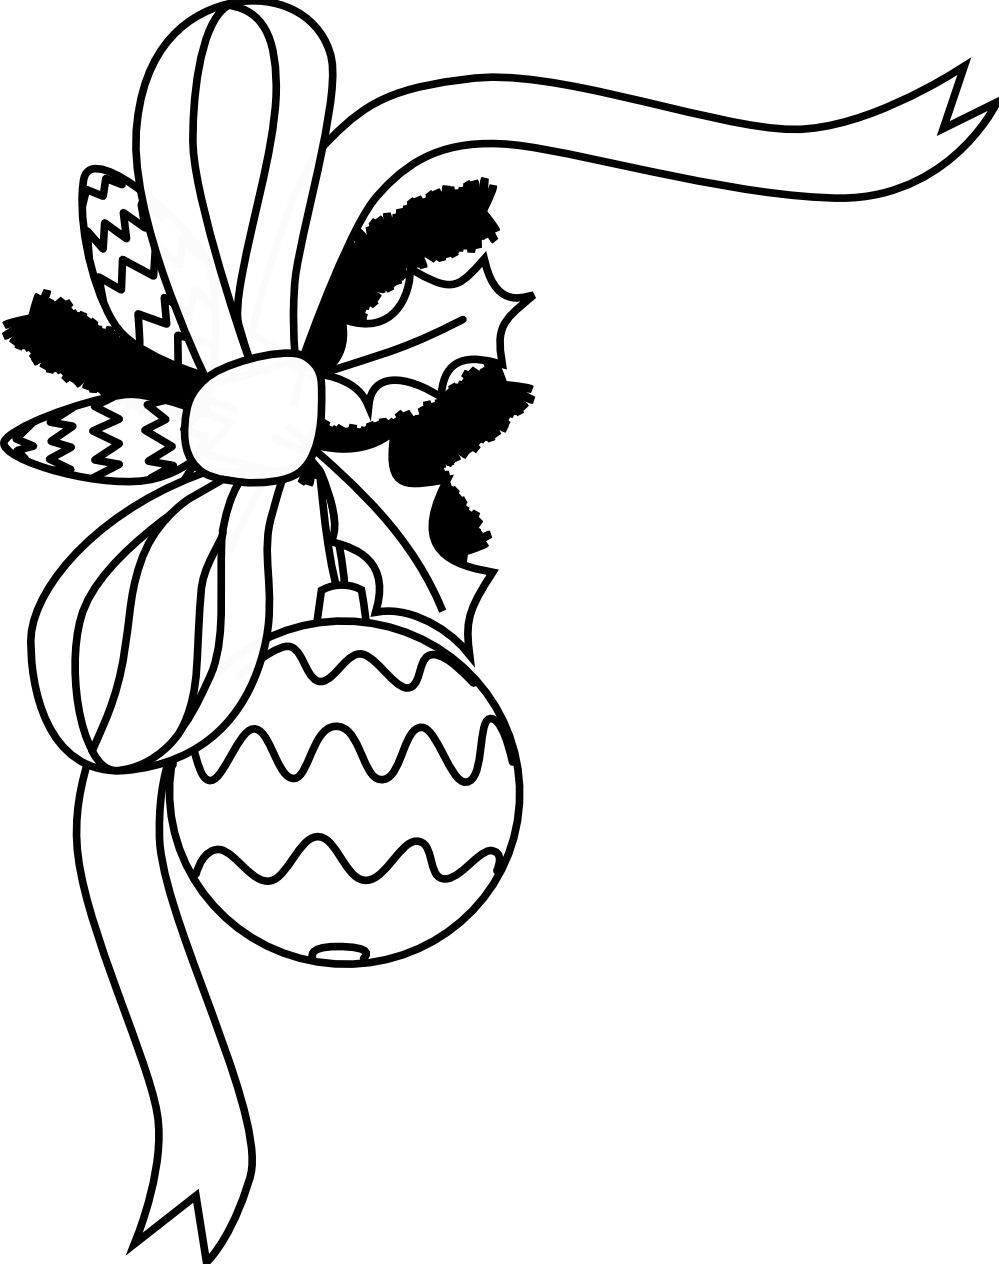 Free Black And White Christmas Clipart.